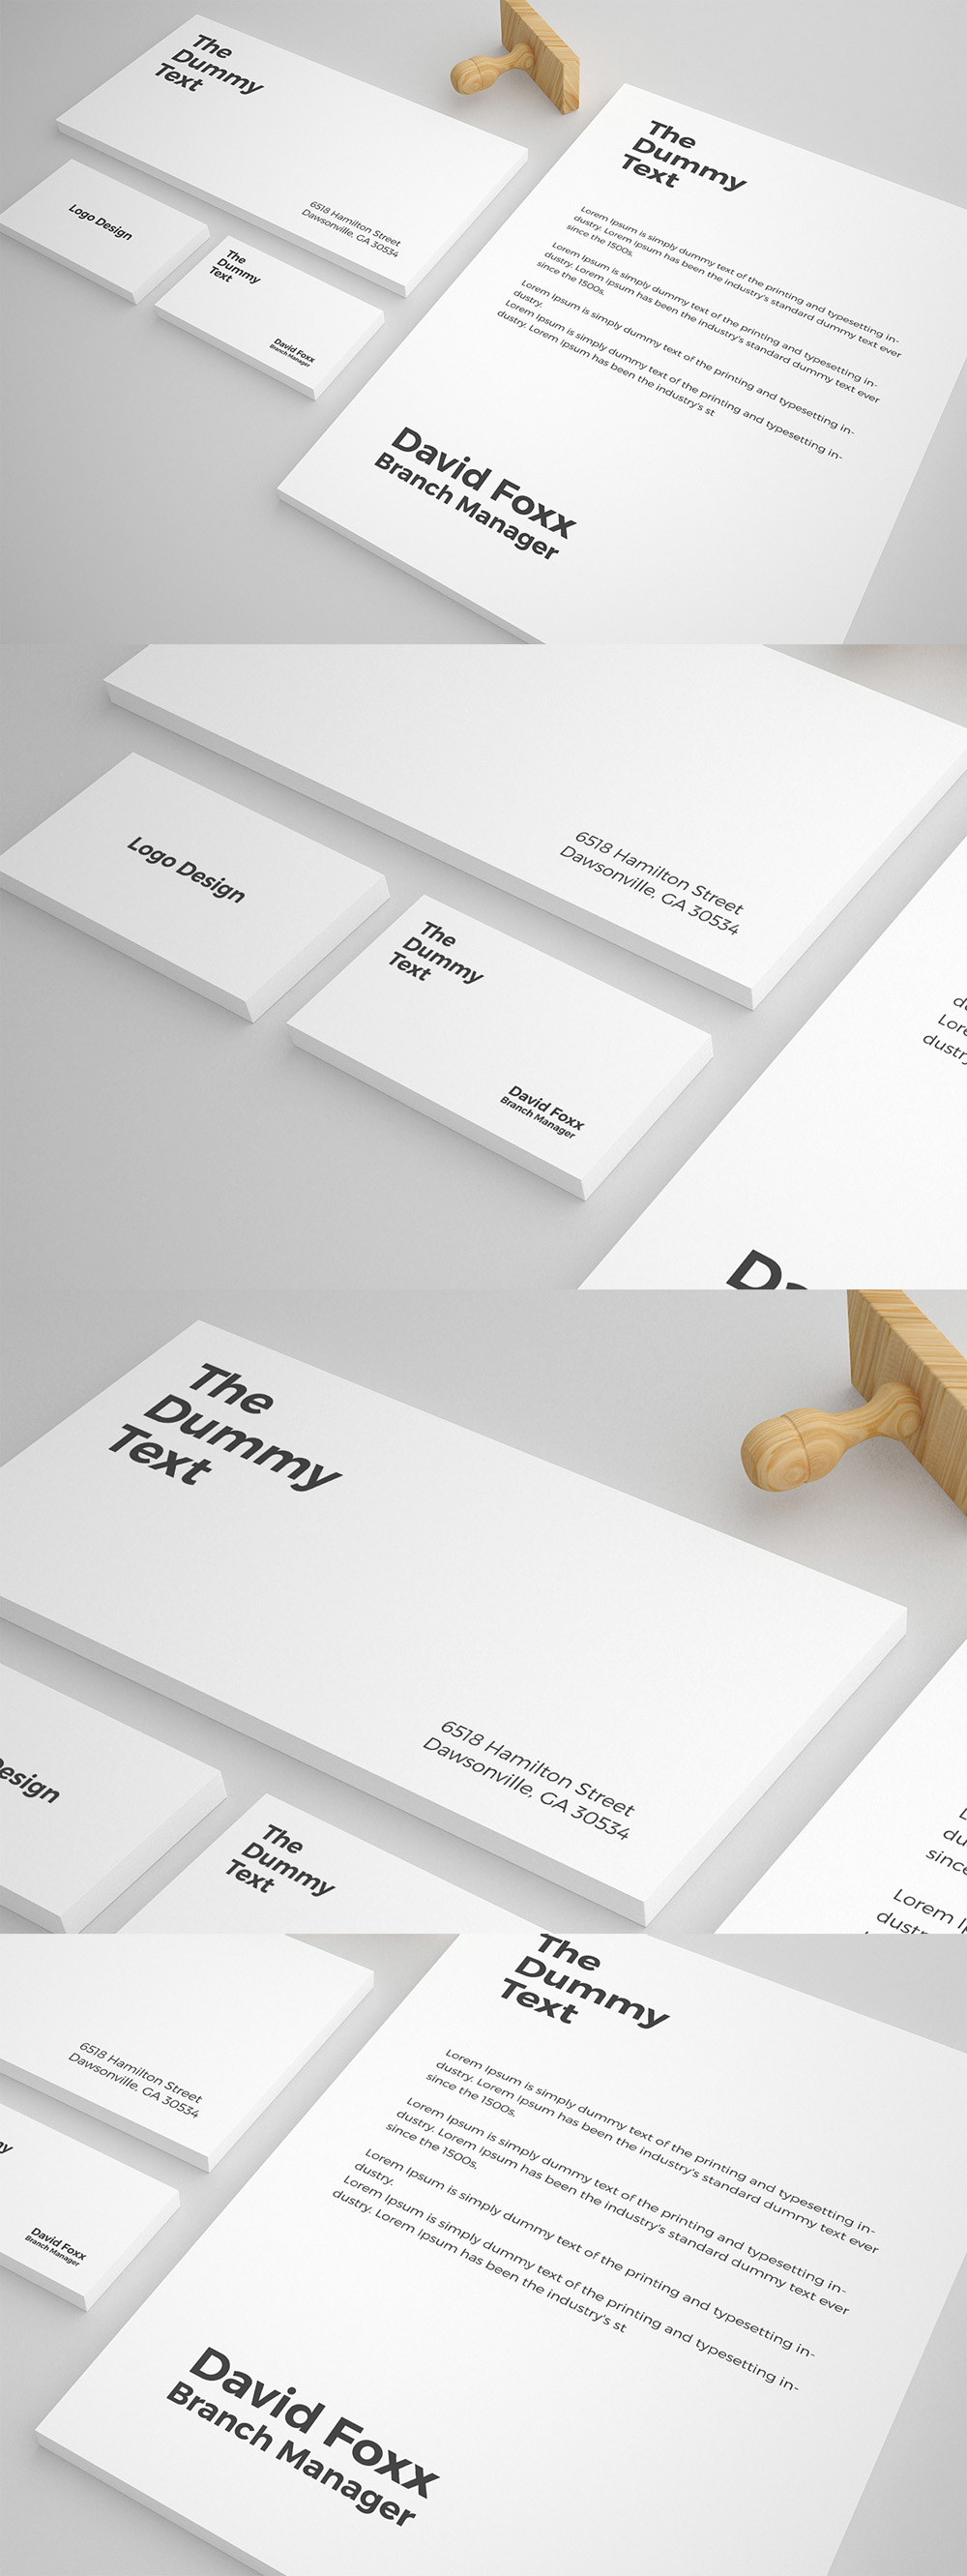 Free Stationary Mockup PSD Template  Freebies  Graphic